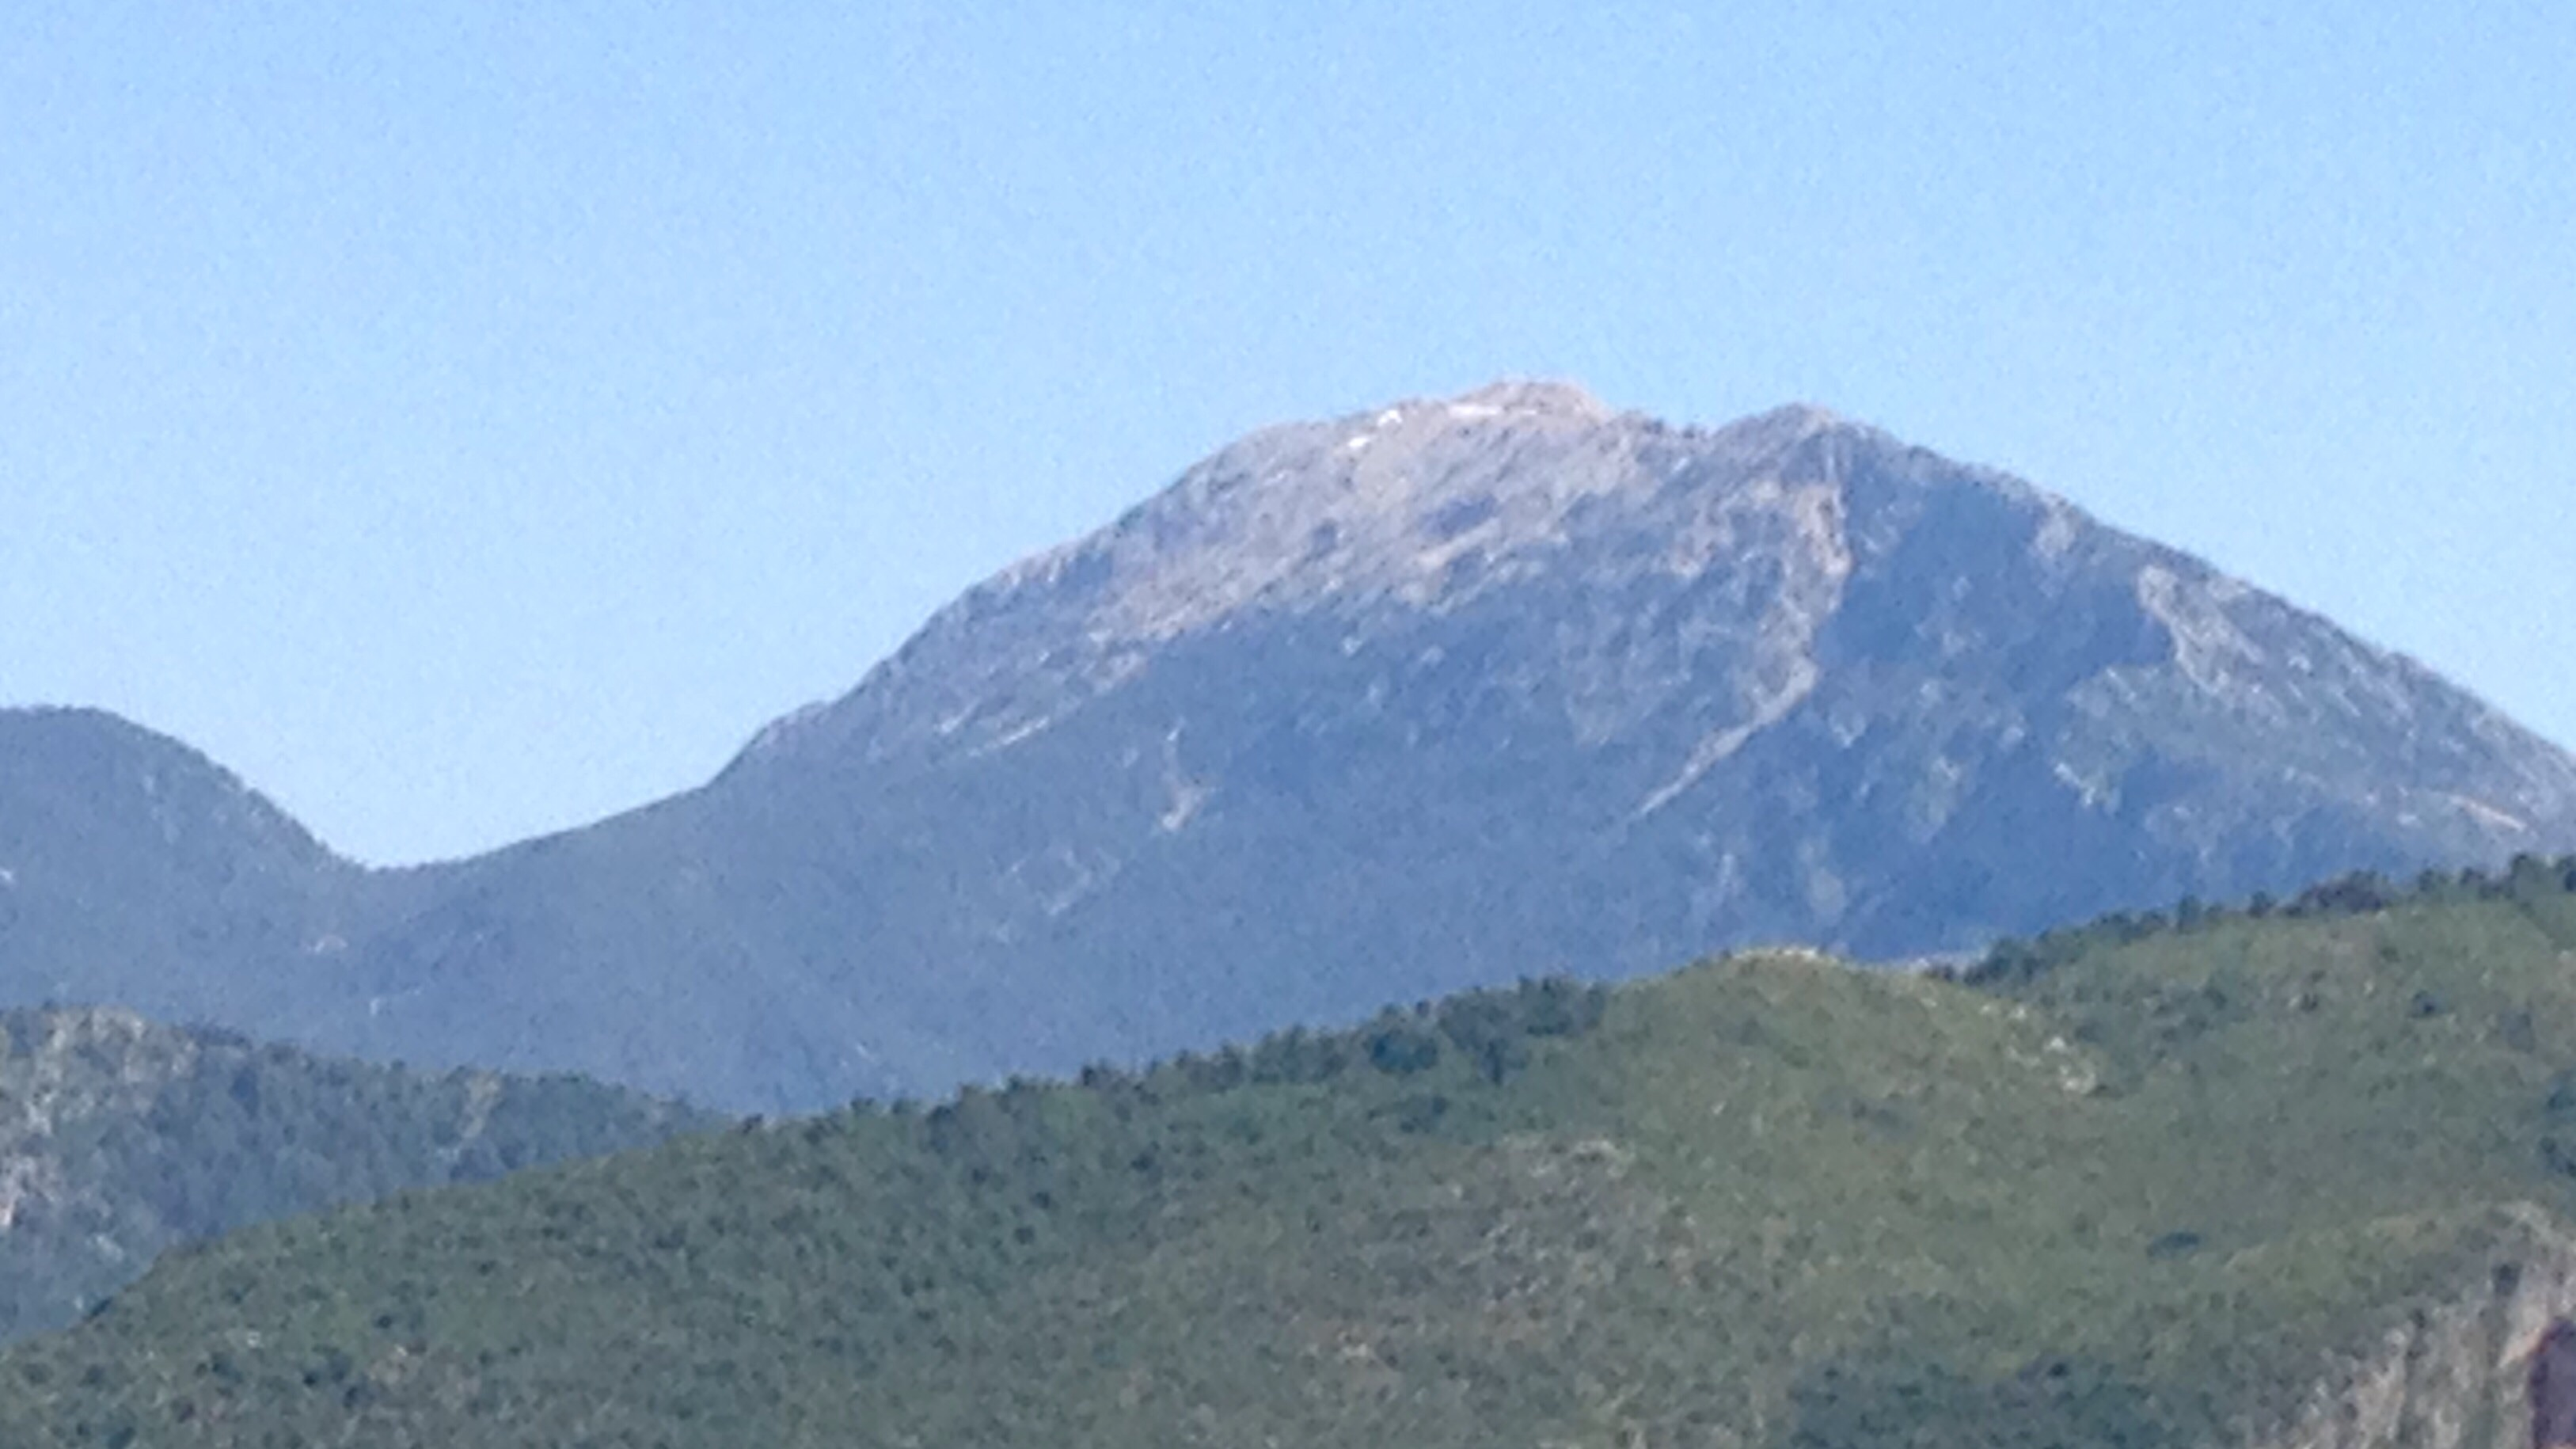 Babadag mountain. The last of the snows melted this week.